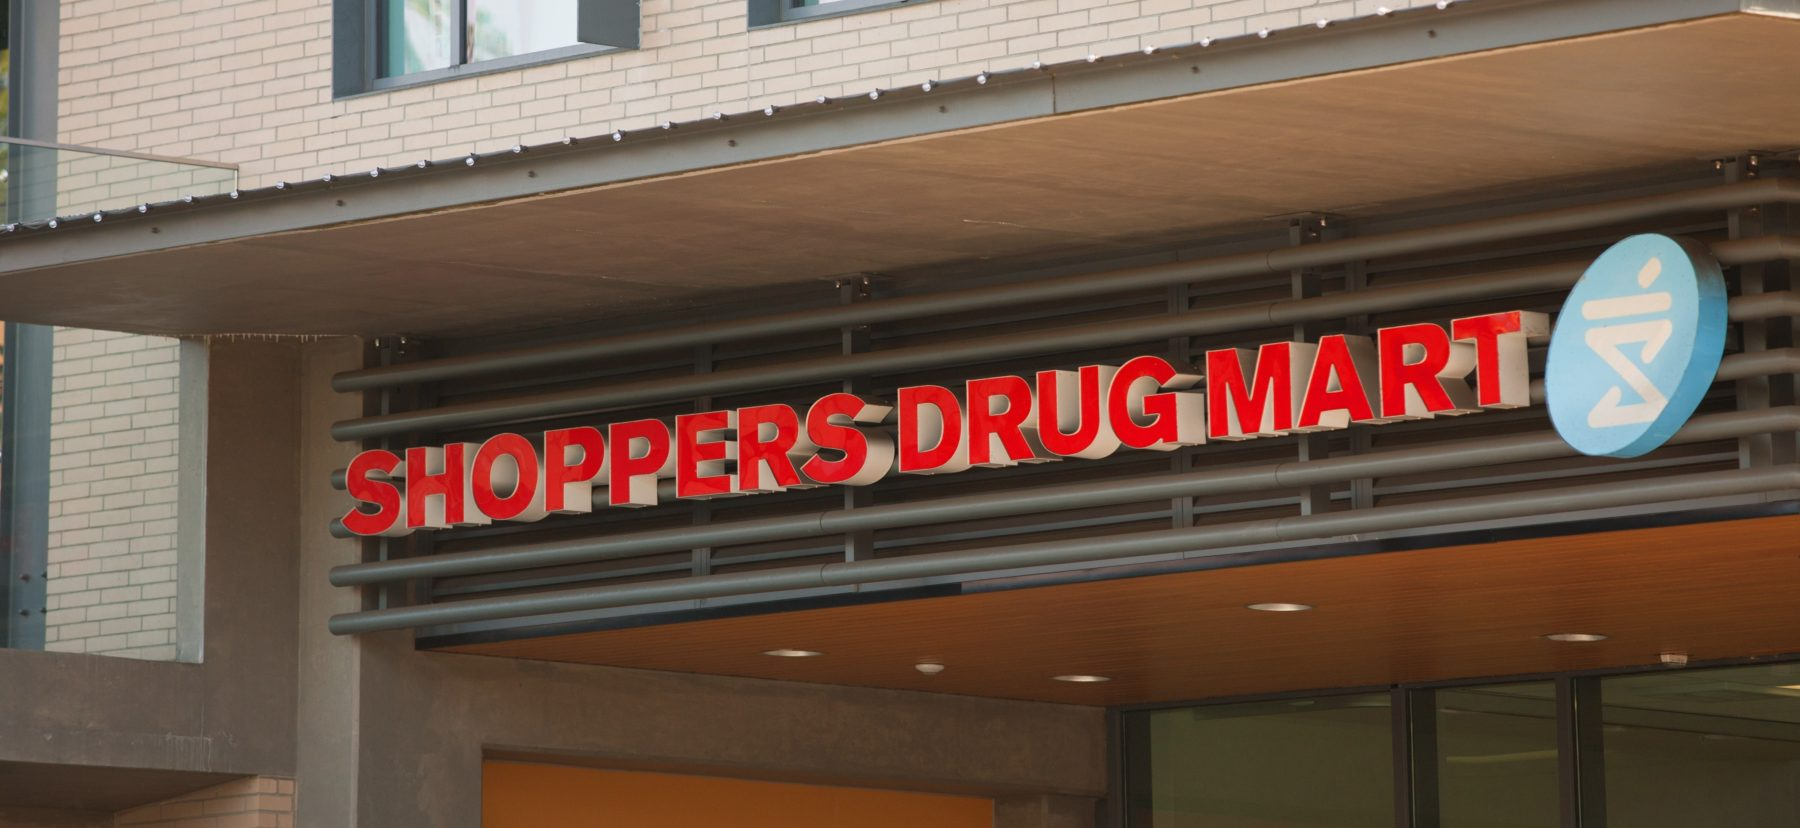 Shoppers Drug Mart Signage